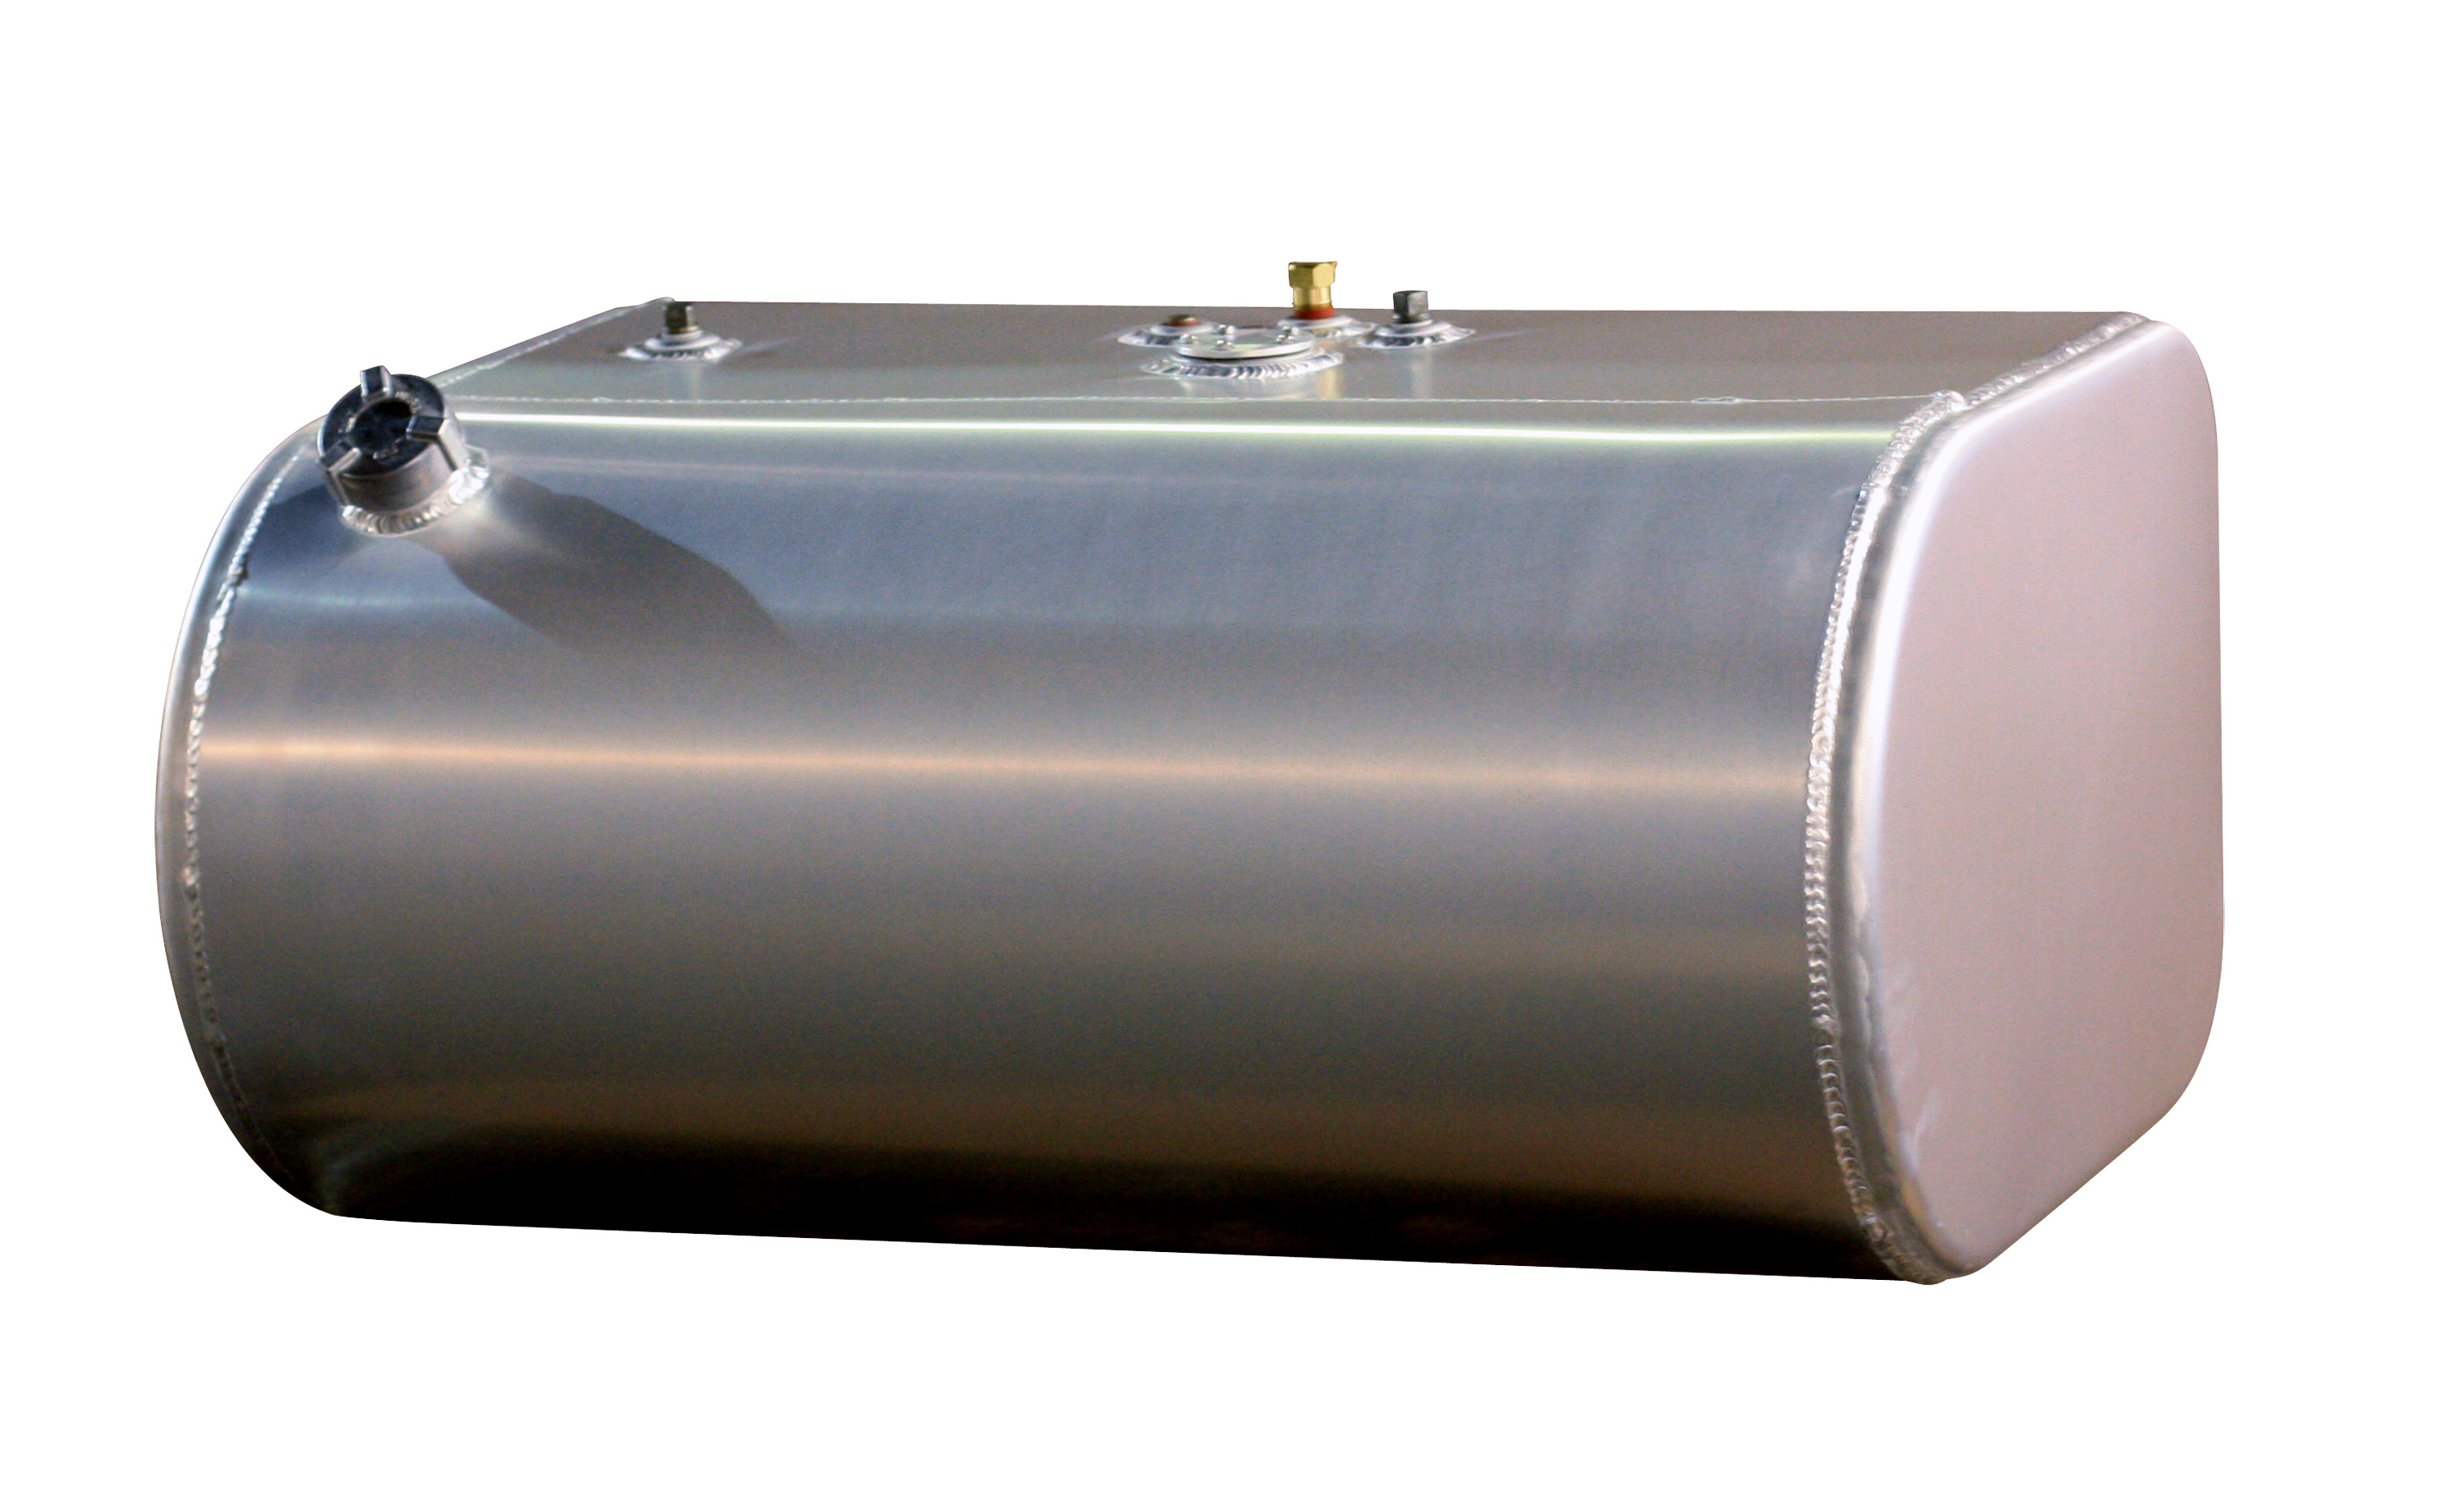 auxiliary fuel tanks for pickup trucks with Prweb4728774 on Truck Bed Fuel Tanks furthermore Photo Gallery moreover Sendingunits further thefuelbox besides Viewtopic.